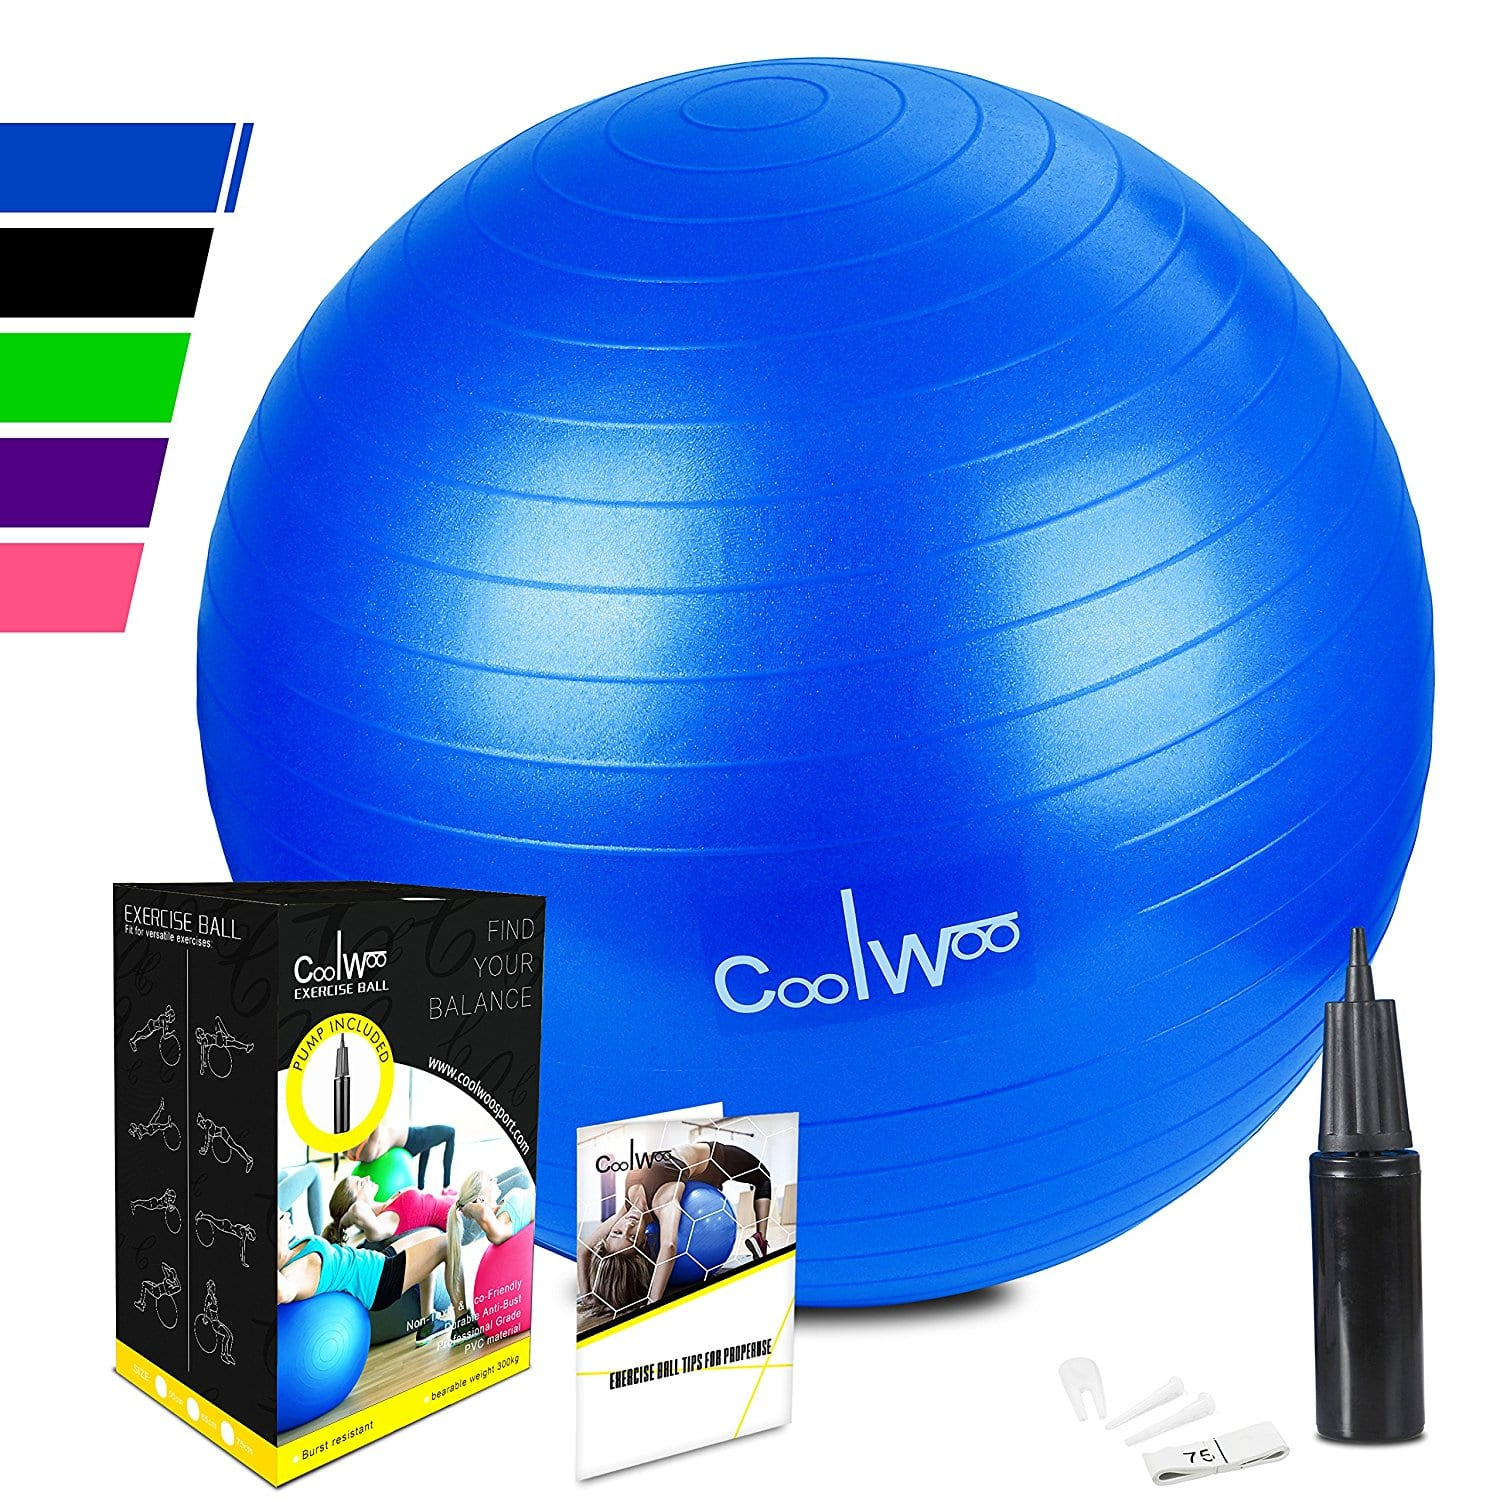 Anti Burst, Non Slip Exercise Ball, Yoga Stability Ball Chair with Hand Pump (65cm) for Balance, Pilates, Stretching & Core Strength Training $5.85